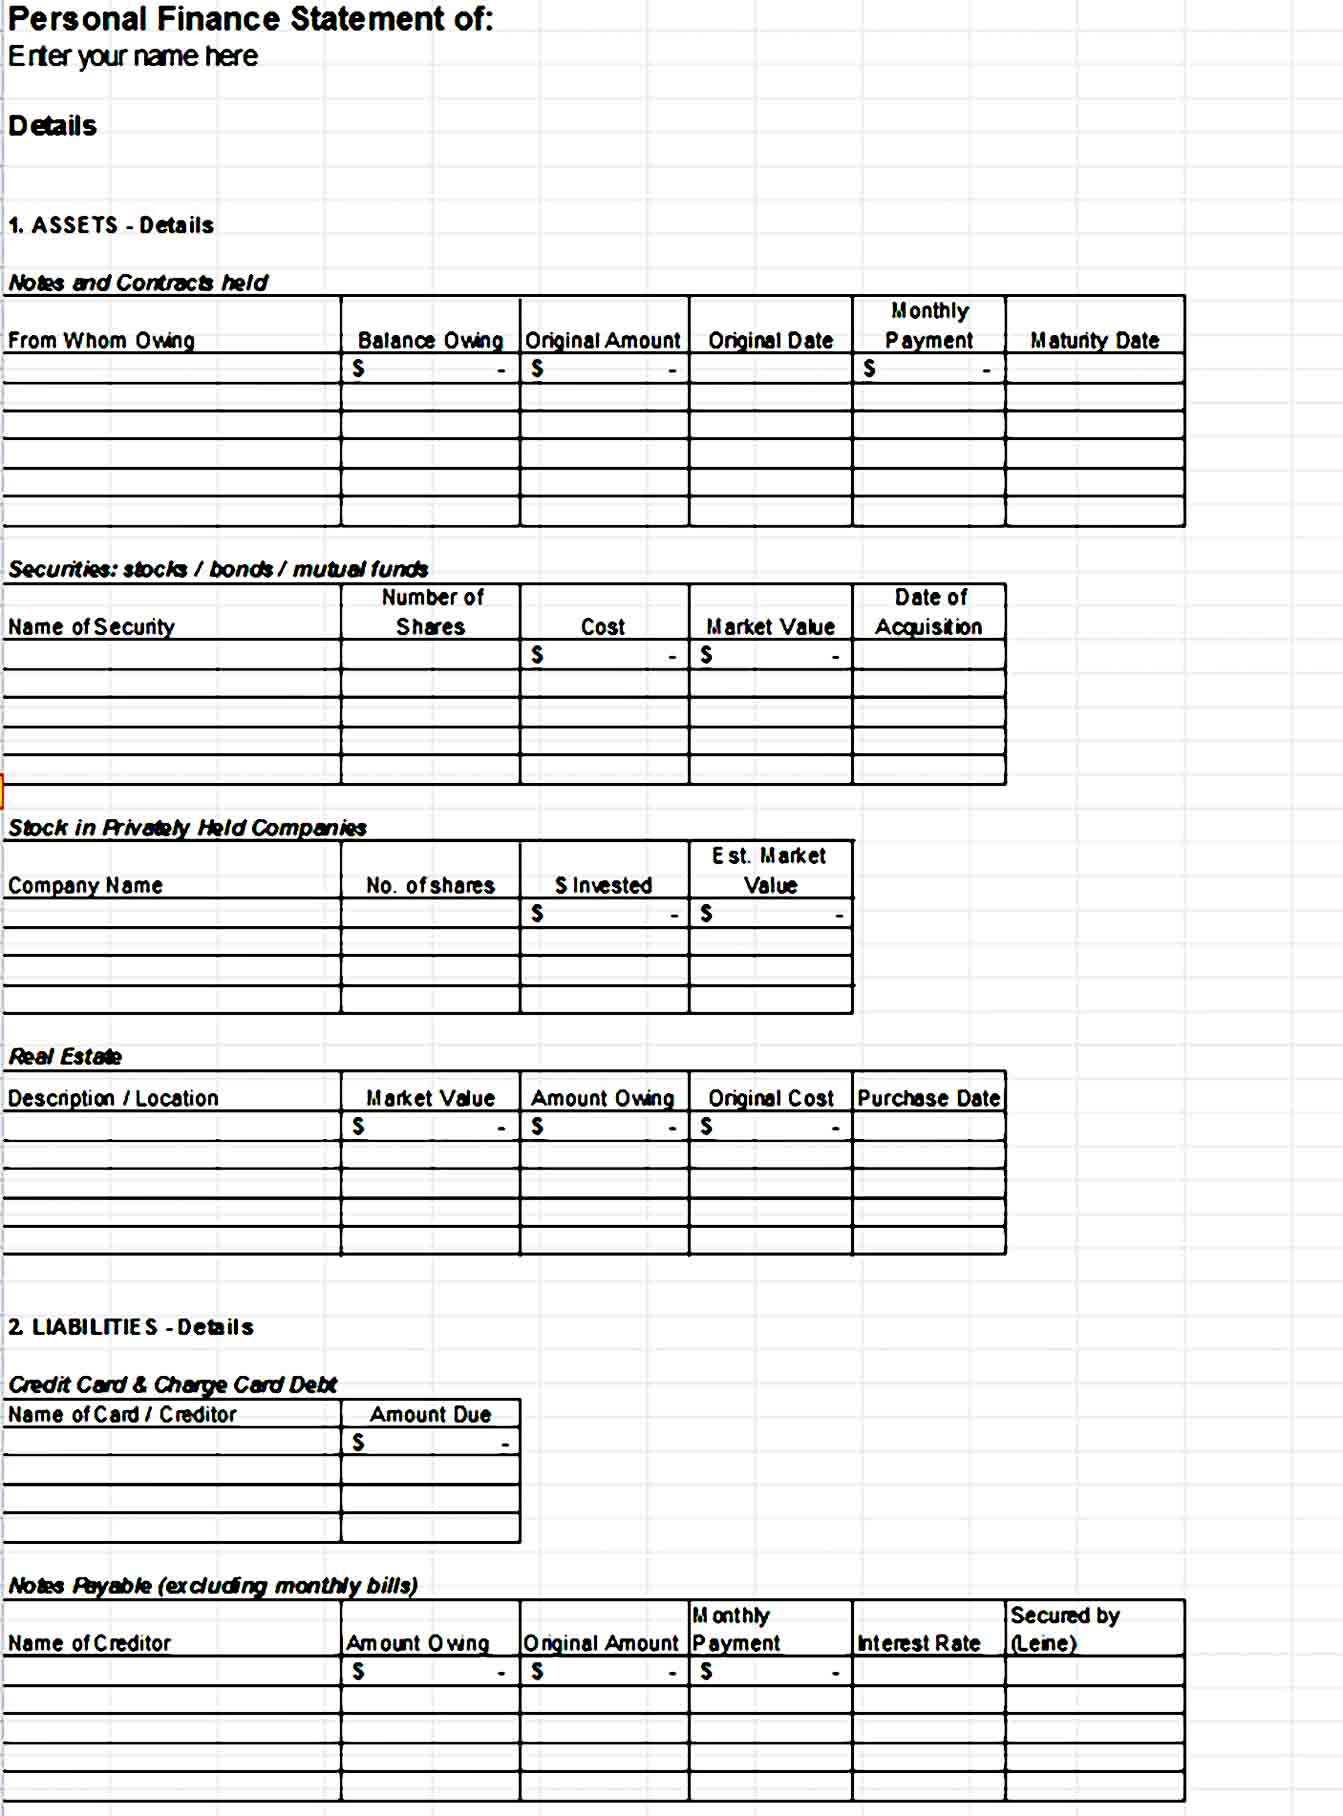 Personal Financial Statement Template 23